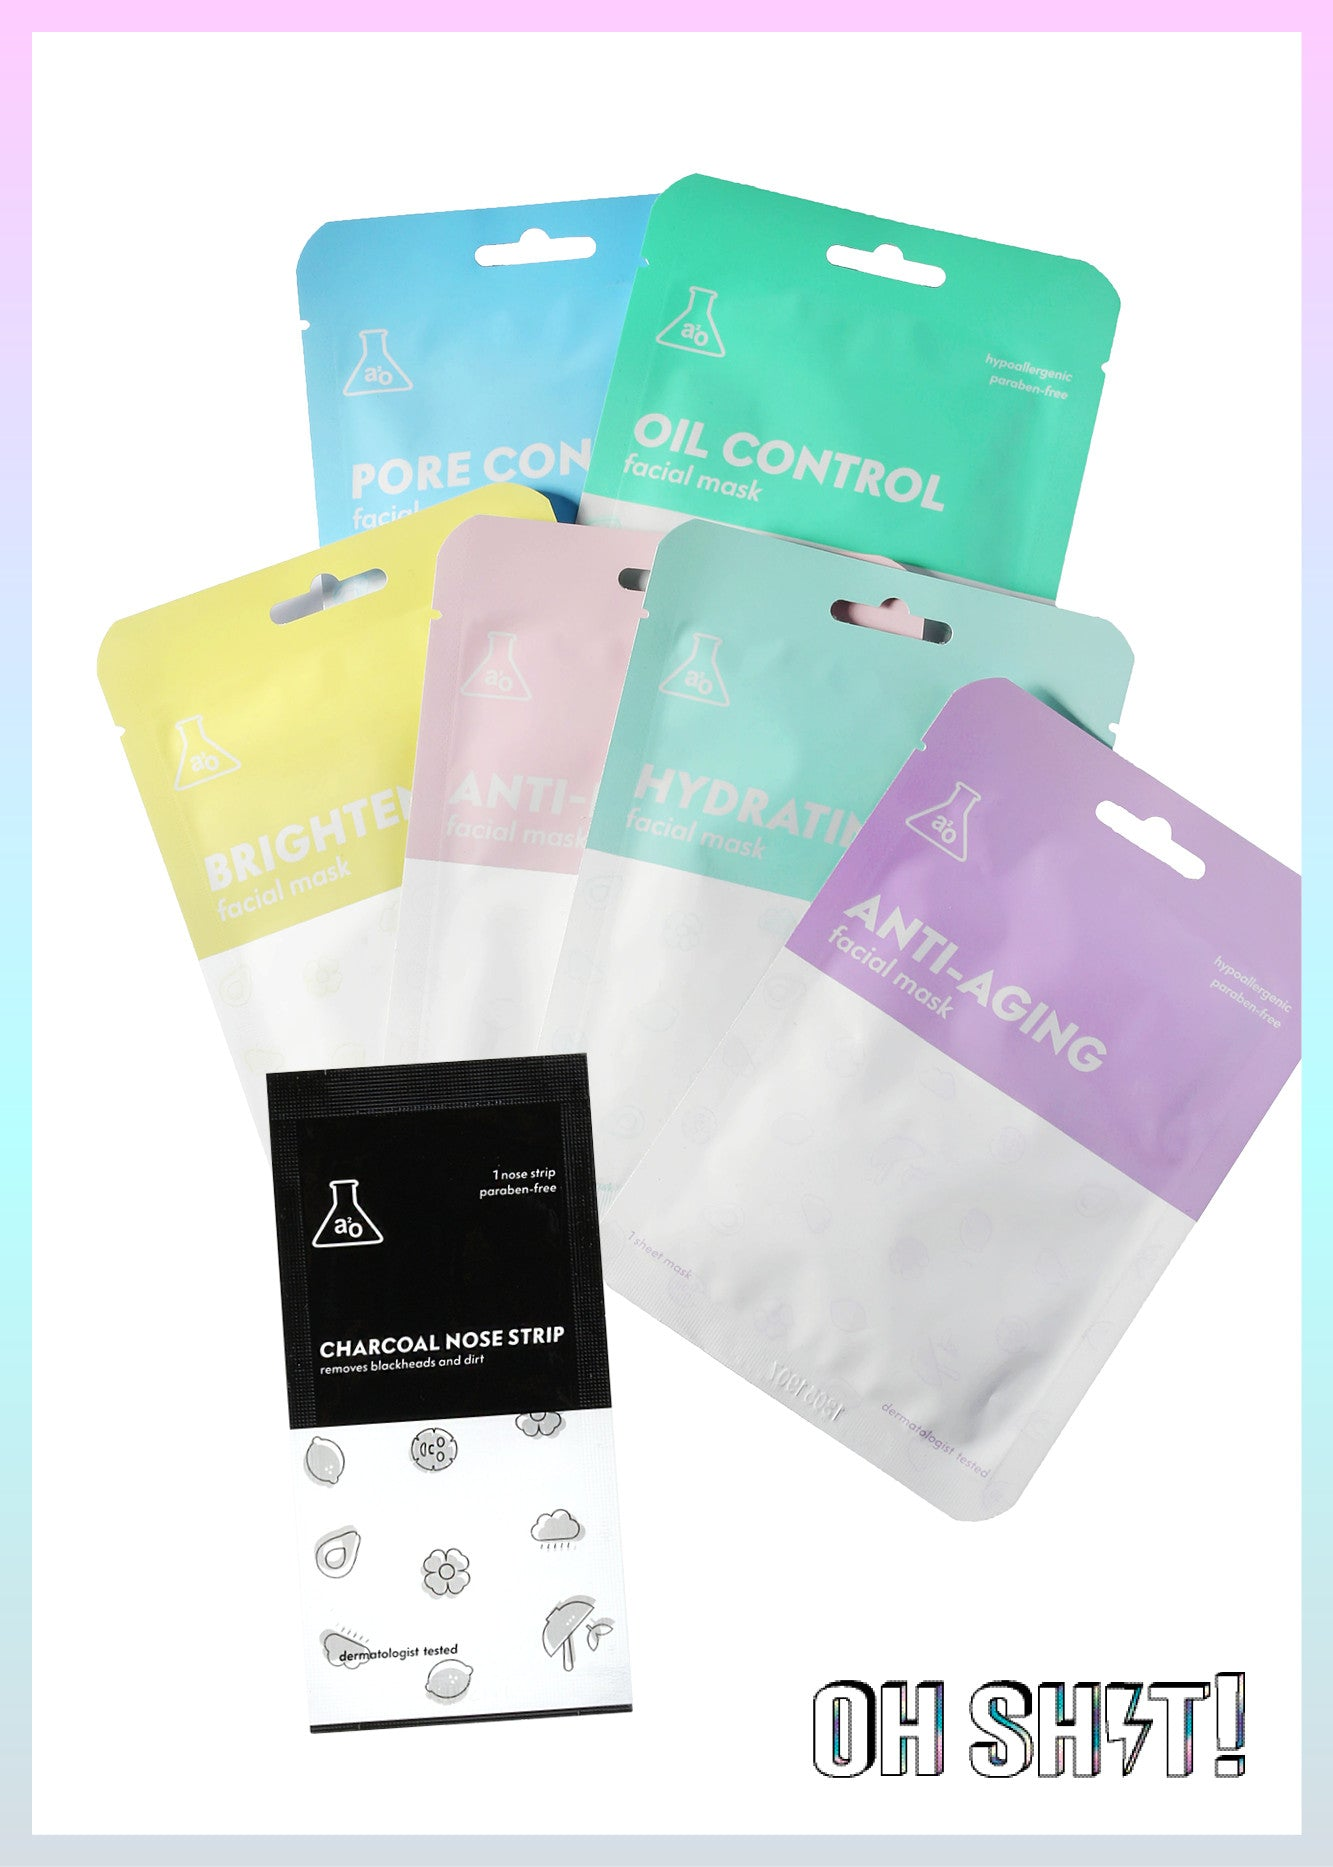 Oh Sh⚡️t a2o Lab Facial Mask Set -$6 (Retail $13)